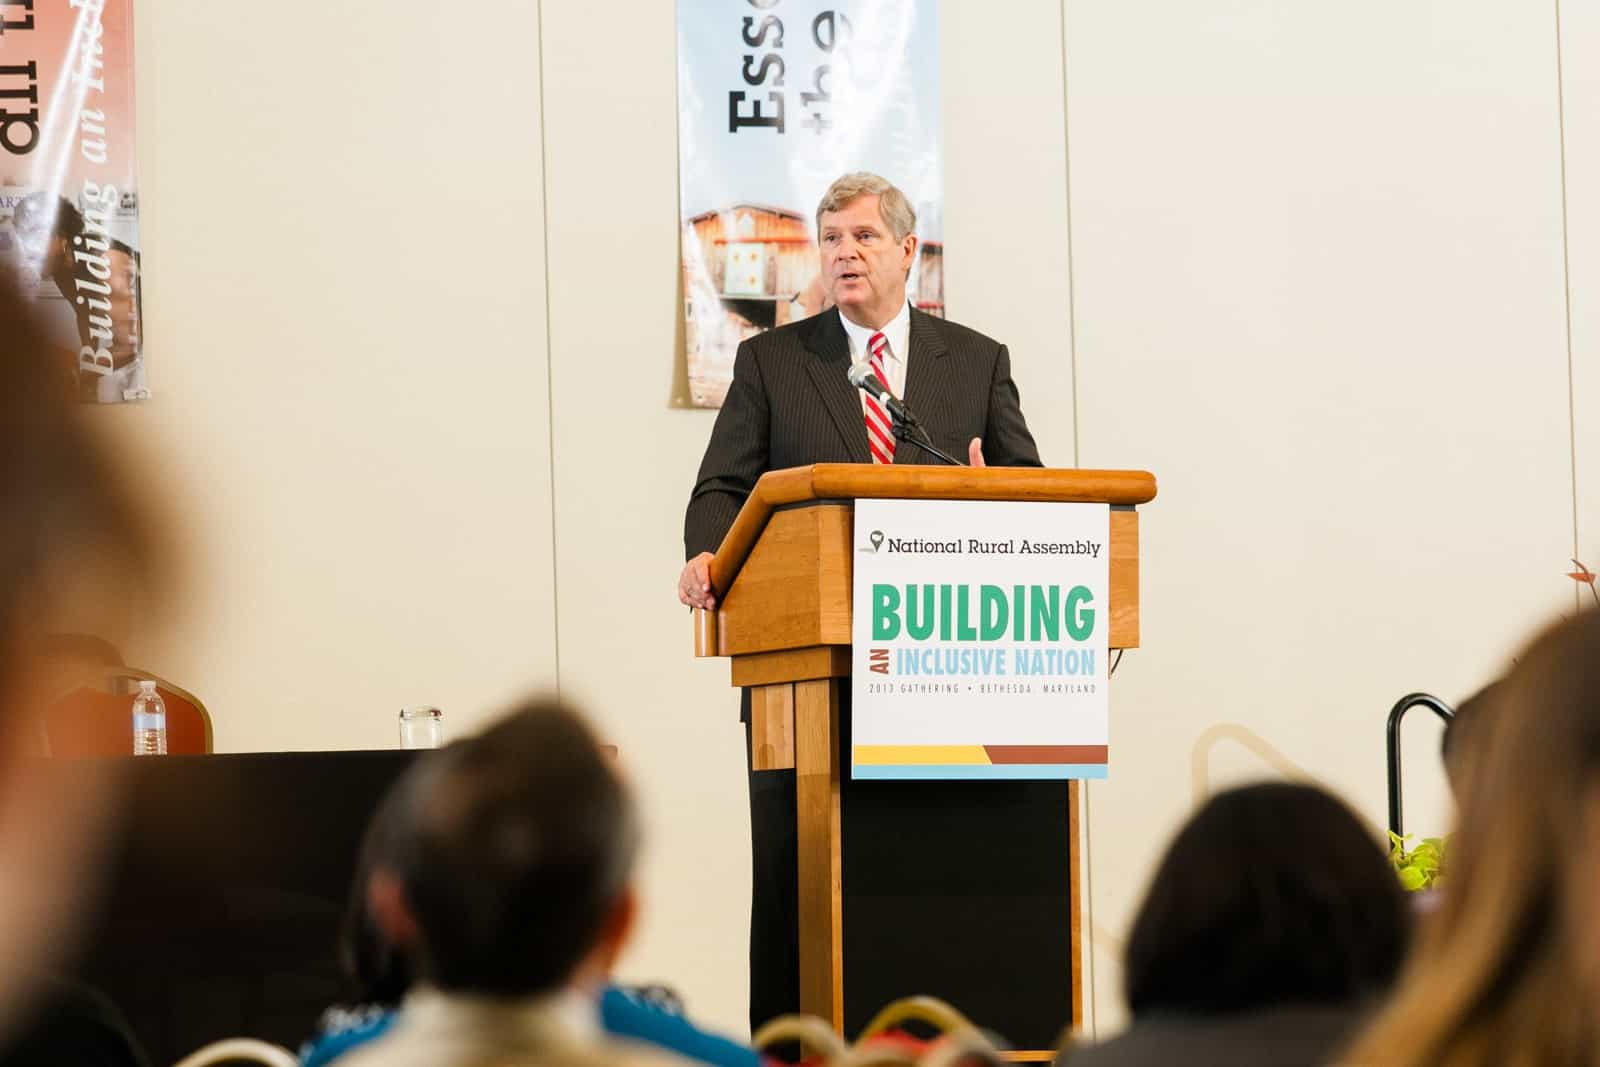 Agriculture Secretary Tom Vilsack addresses the 2013 National Rural Assembly in Washington, D.C. He is the only Cabinet member to have served both terms in the Obama administration. (Daily Yonder photo by Shawn Poynter)